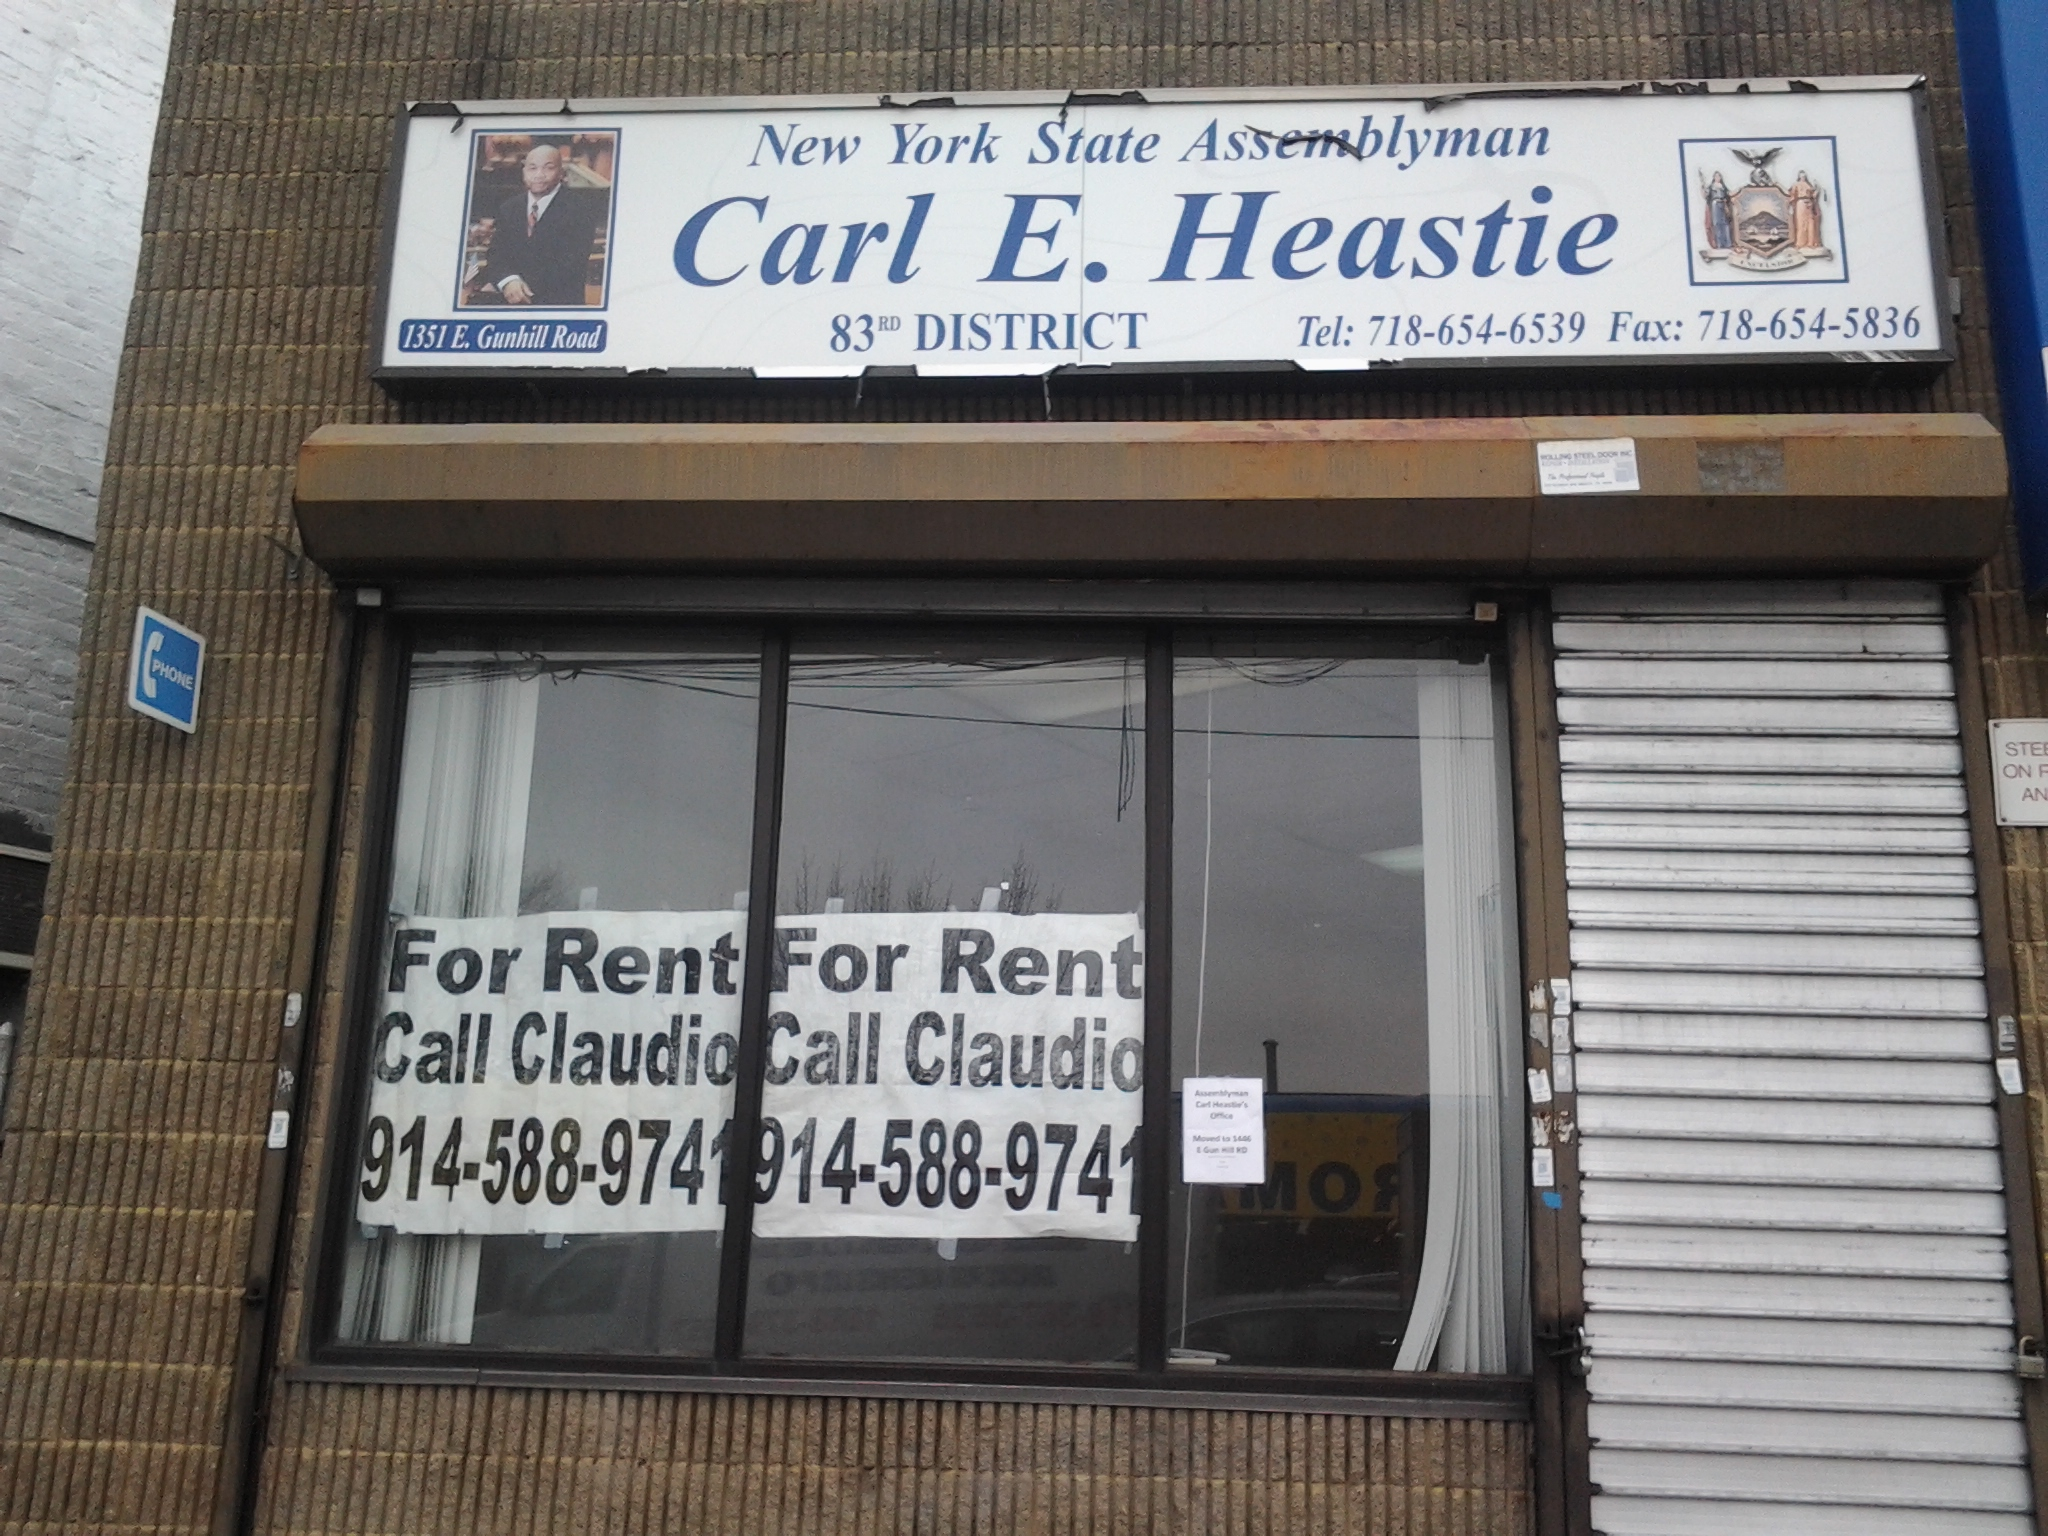 Assemblyman Carl Heastie Moves Office Down The Street